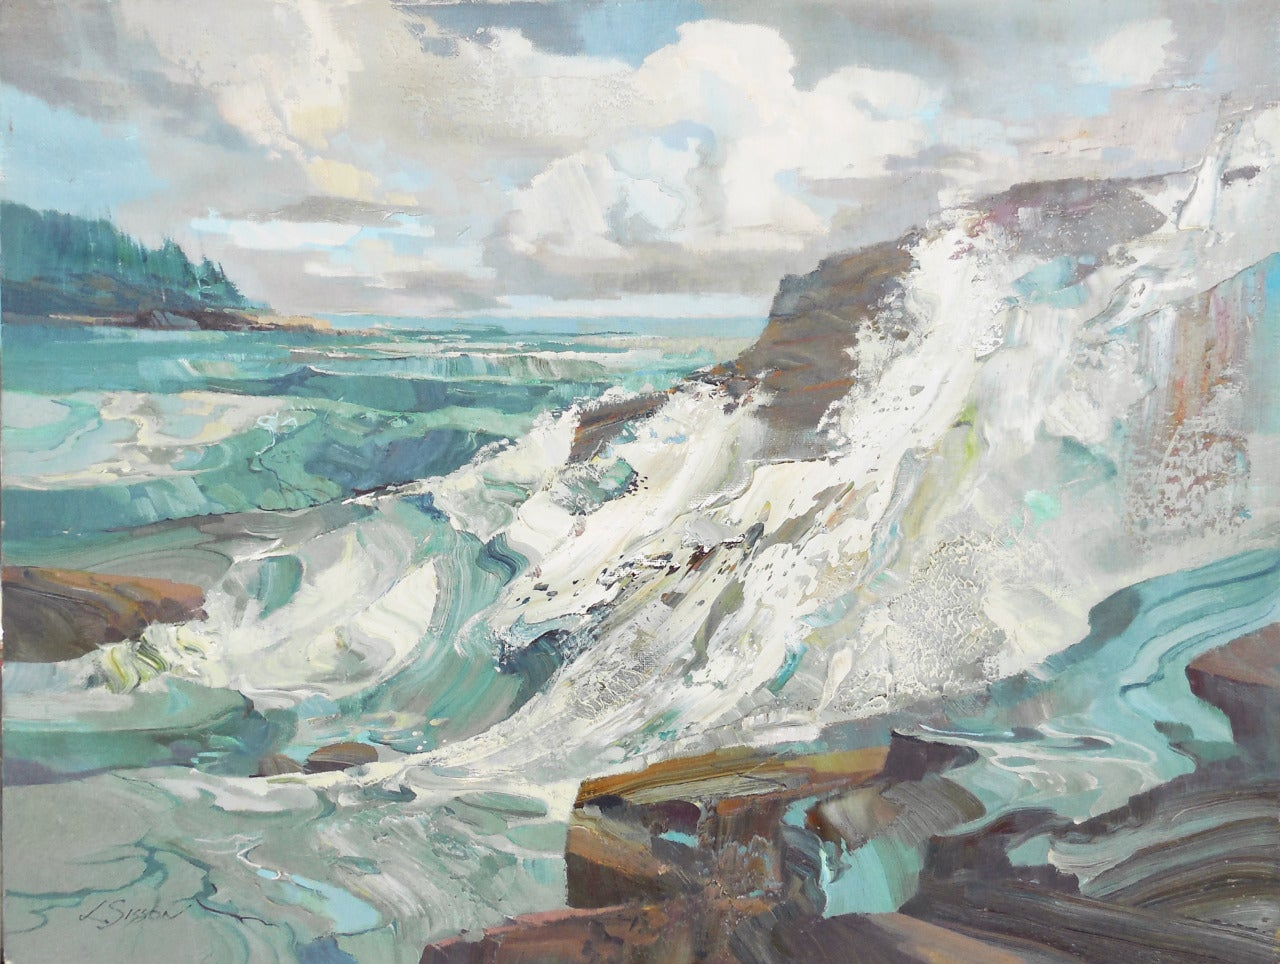 Laurence Sisson Seascape At 1stdibs